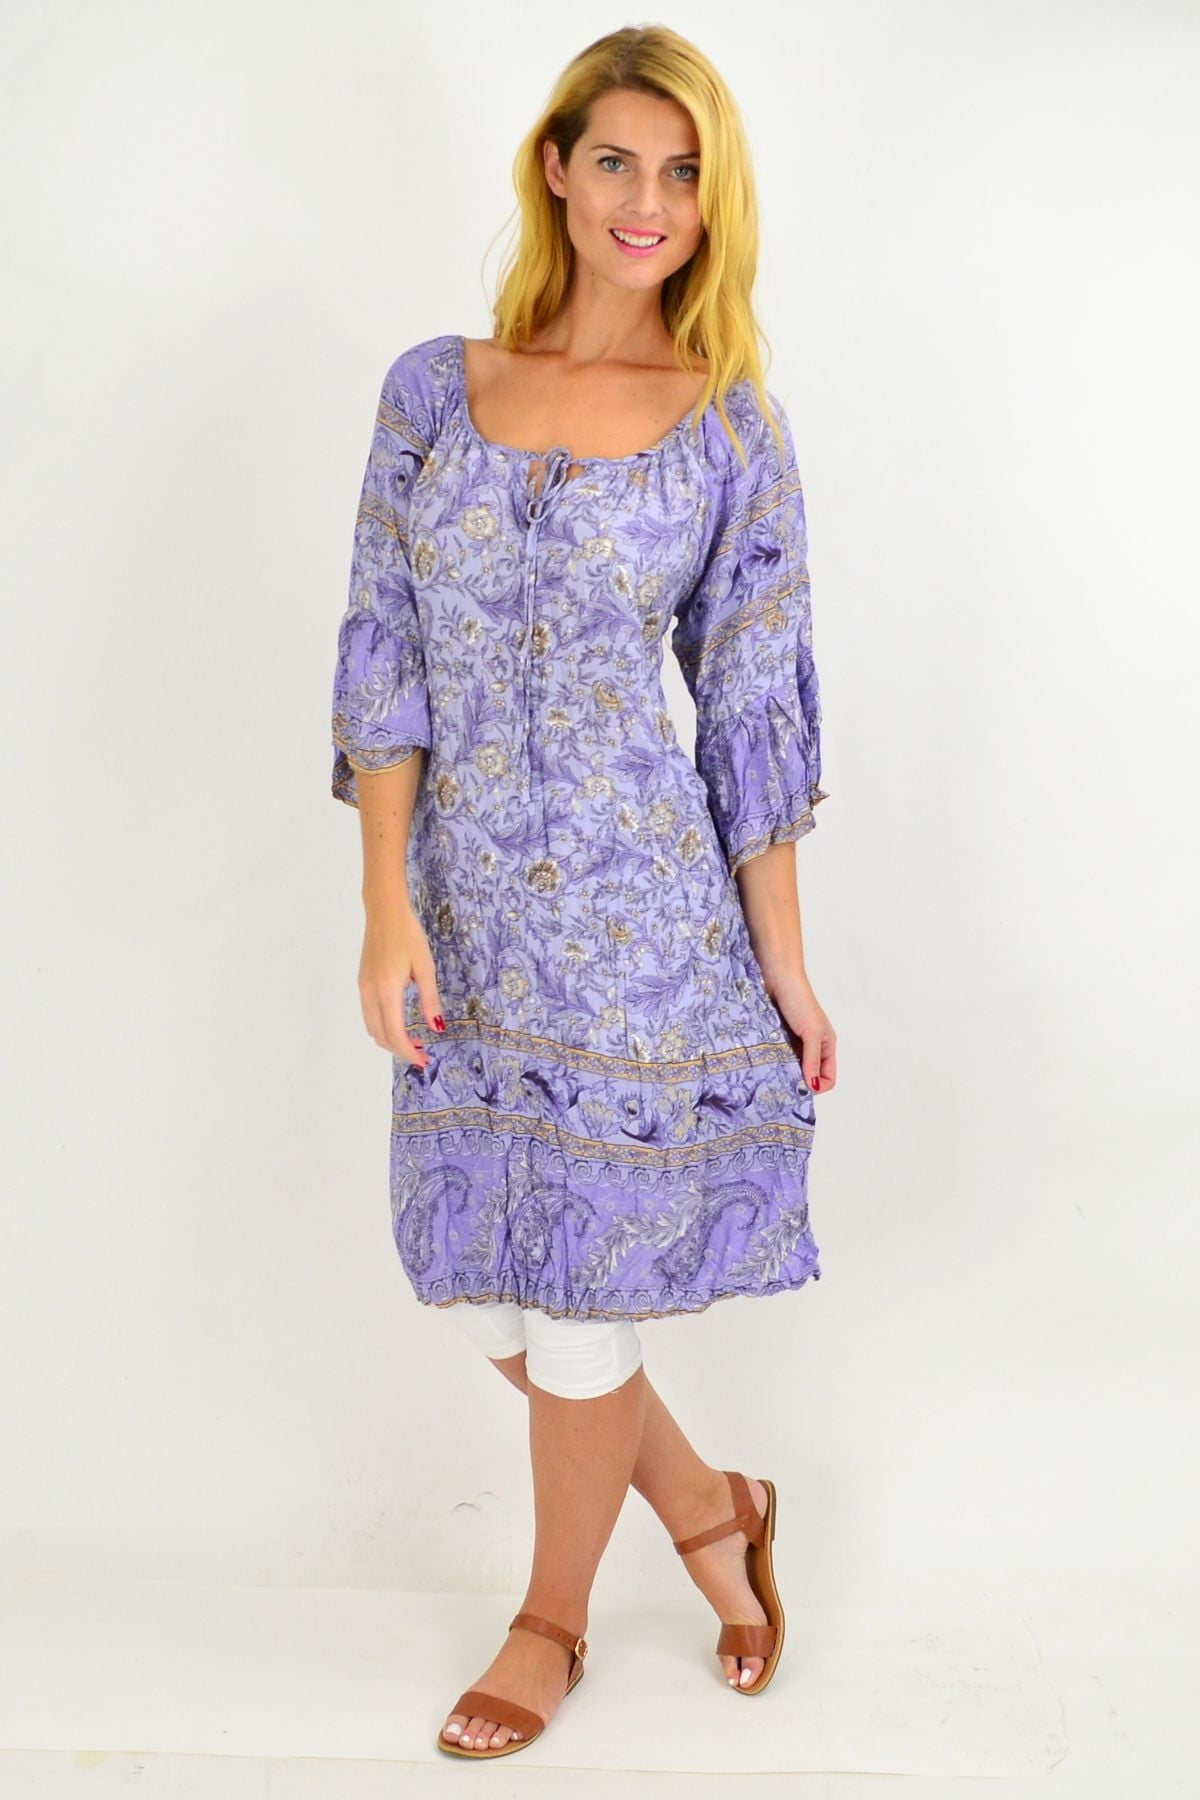 Lilac Floral Crinkle Tie Tunic Dress | I Love Tunics | Tunic Tops | Tunic | Tunic Dresses  | womens clothing online